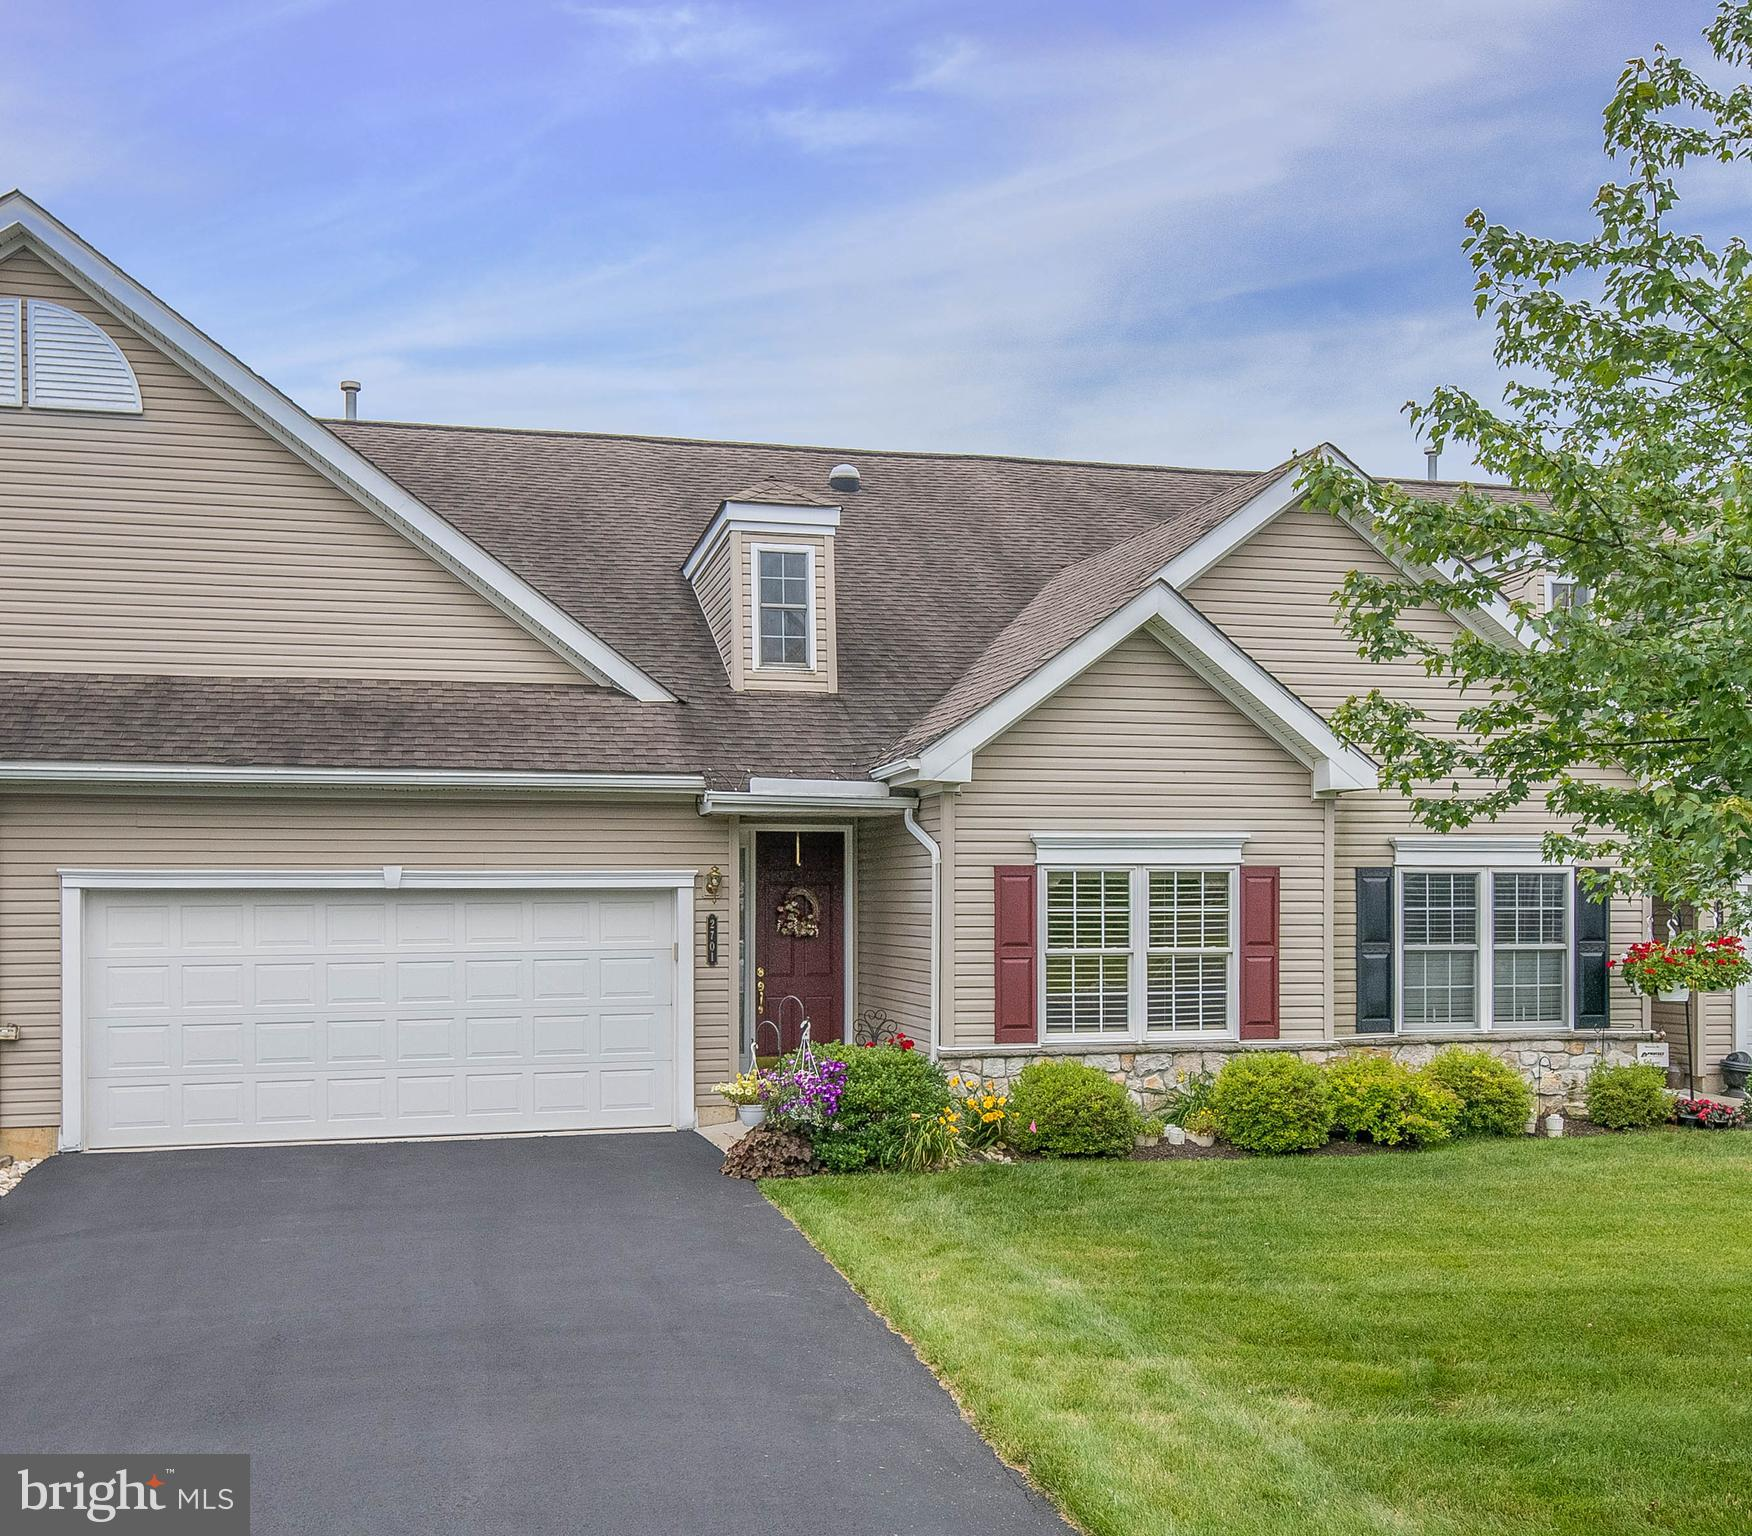 2701 TERRWOOD DR W, MACUNGIE, PA 18062